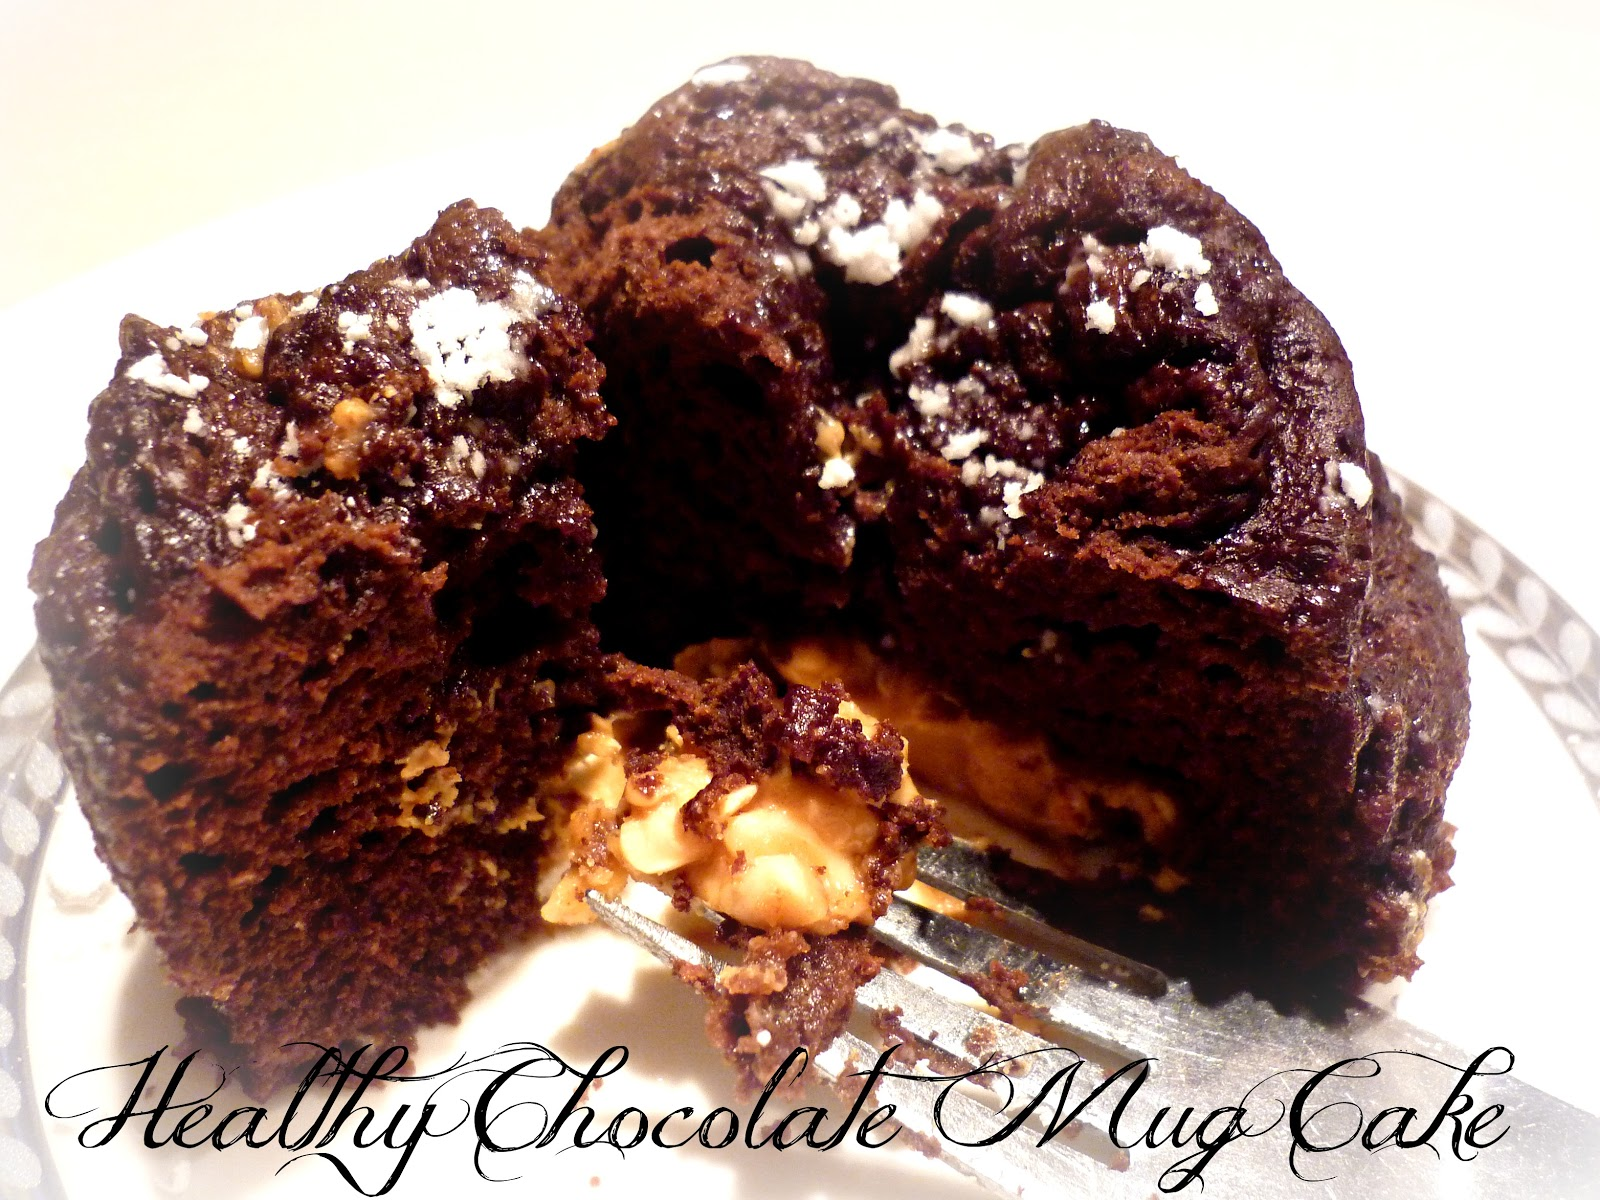 Healthy Chocolate Mug Cake with Peanut Butter Filling